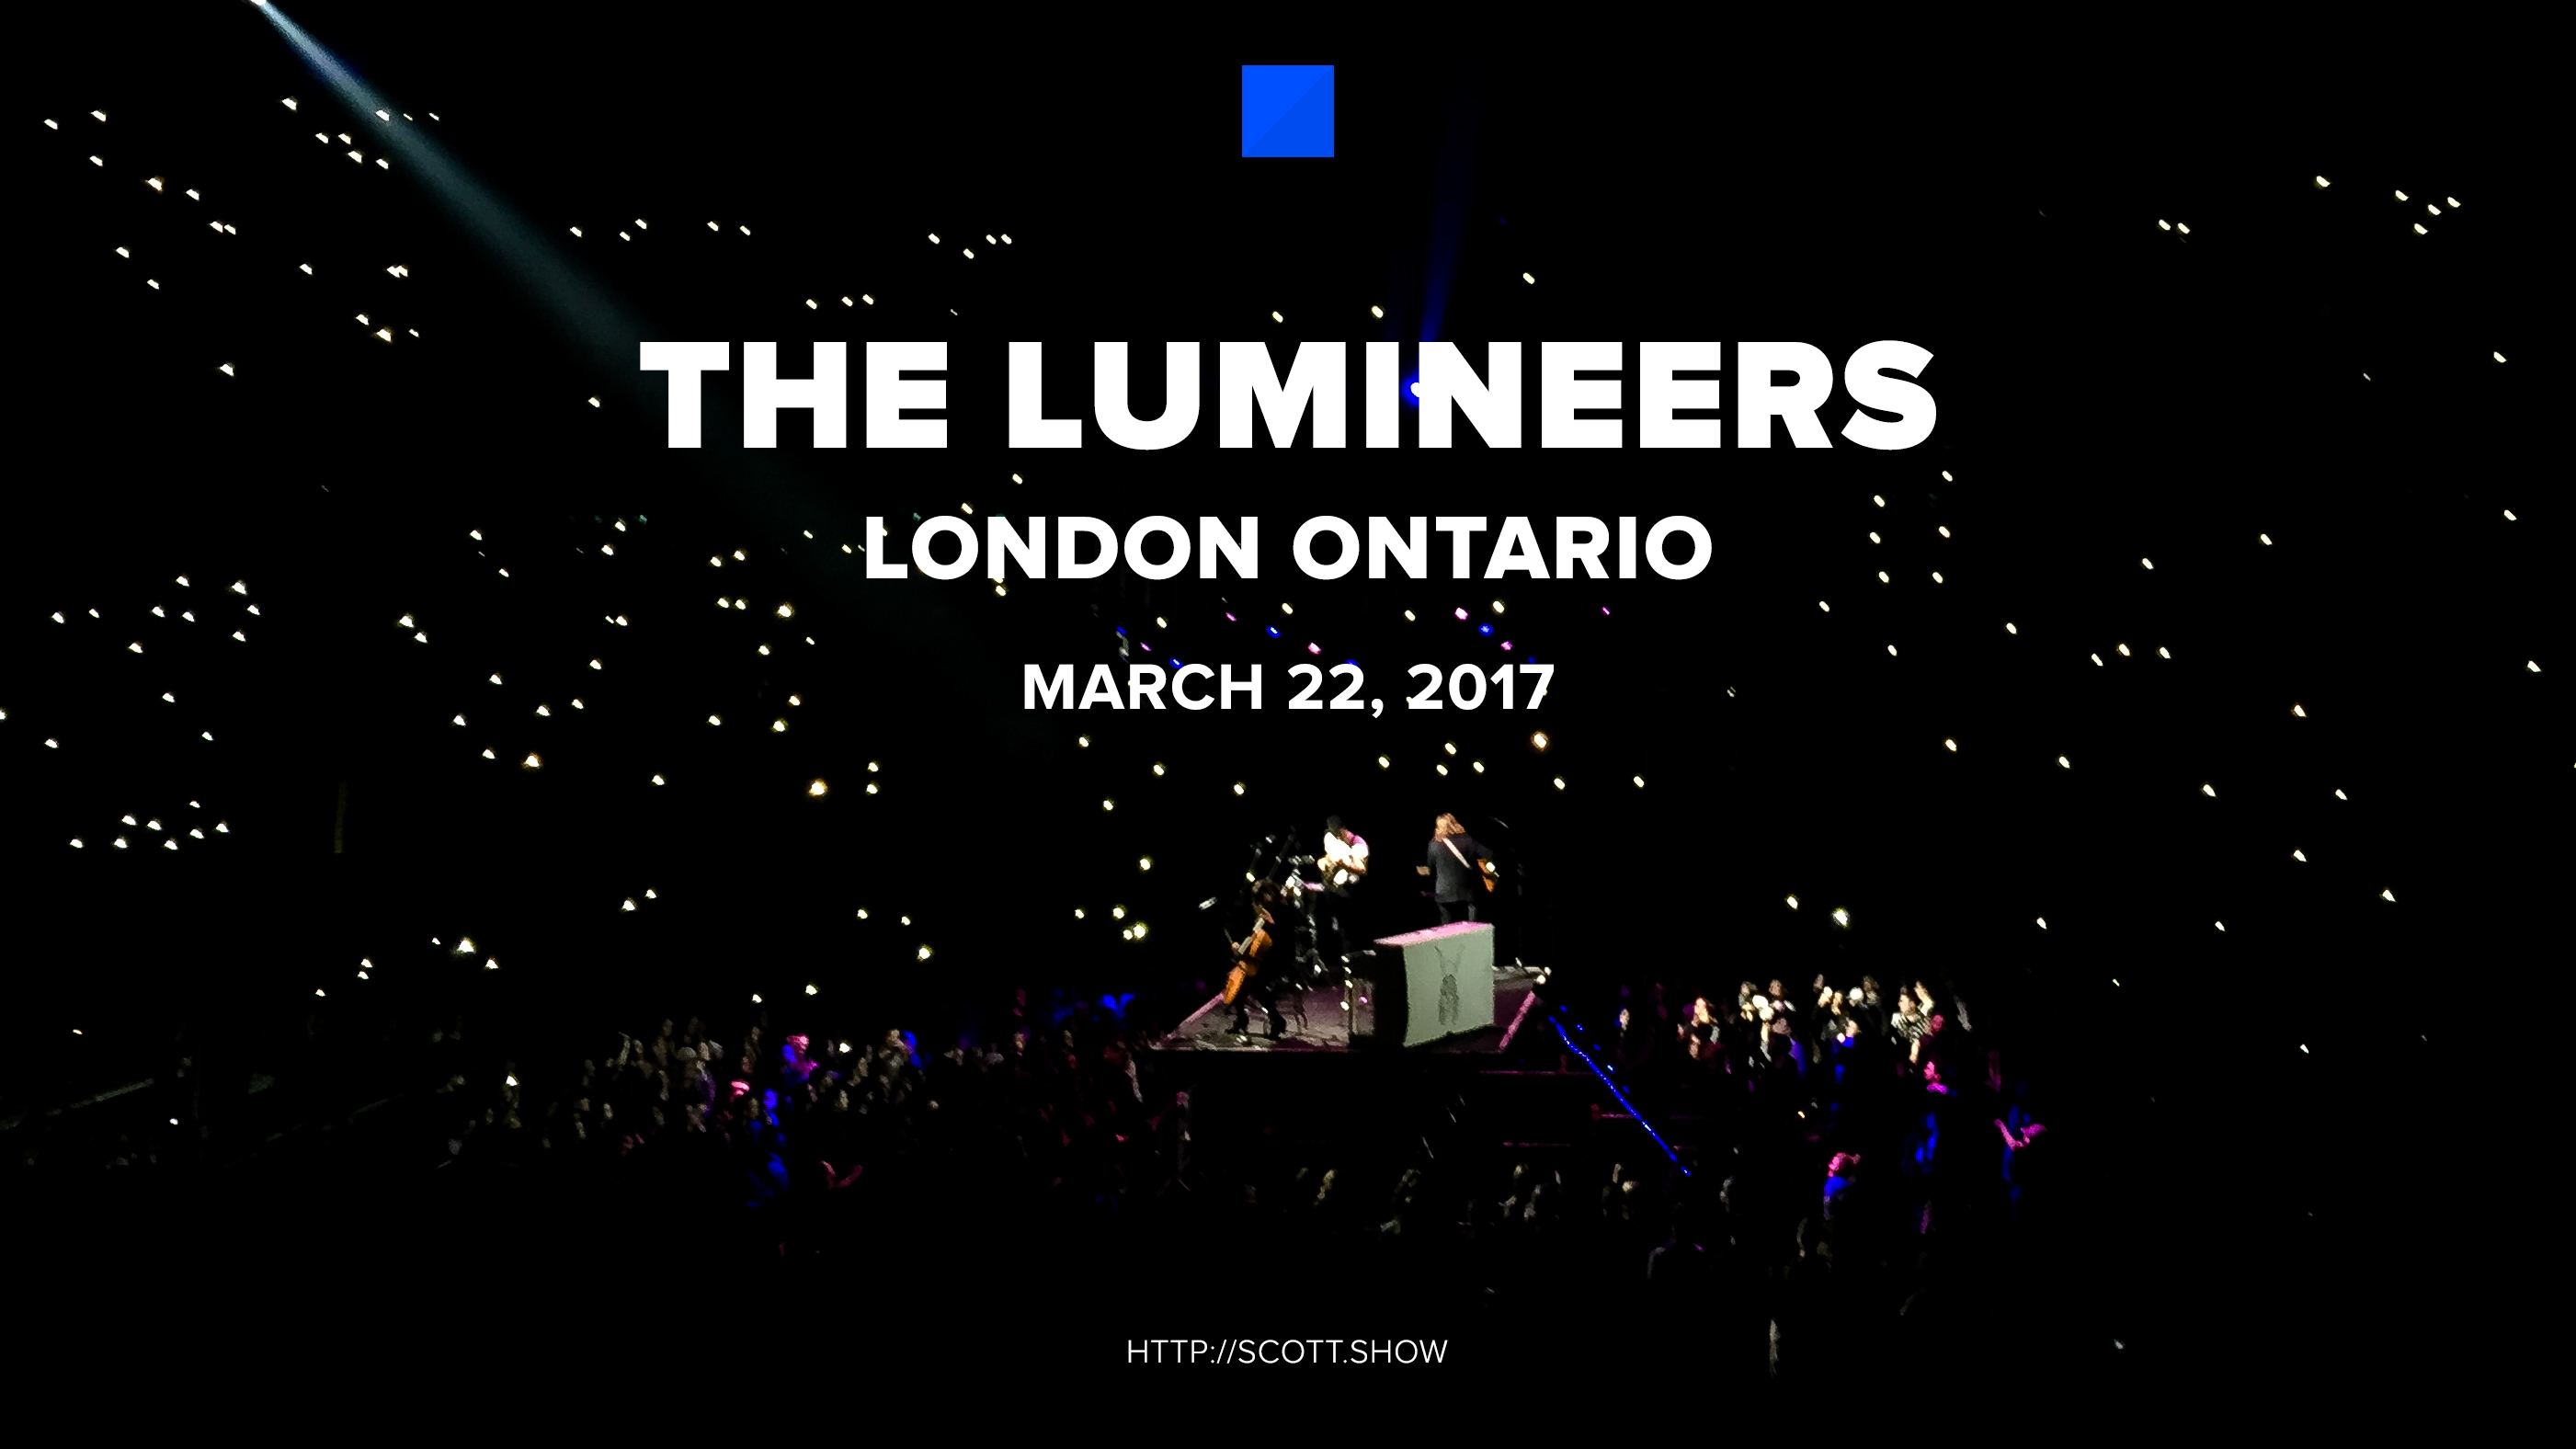 lumineers concert video thumbnail cover image